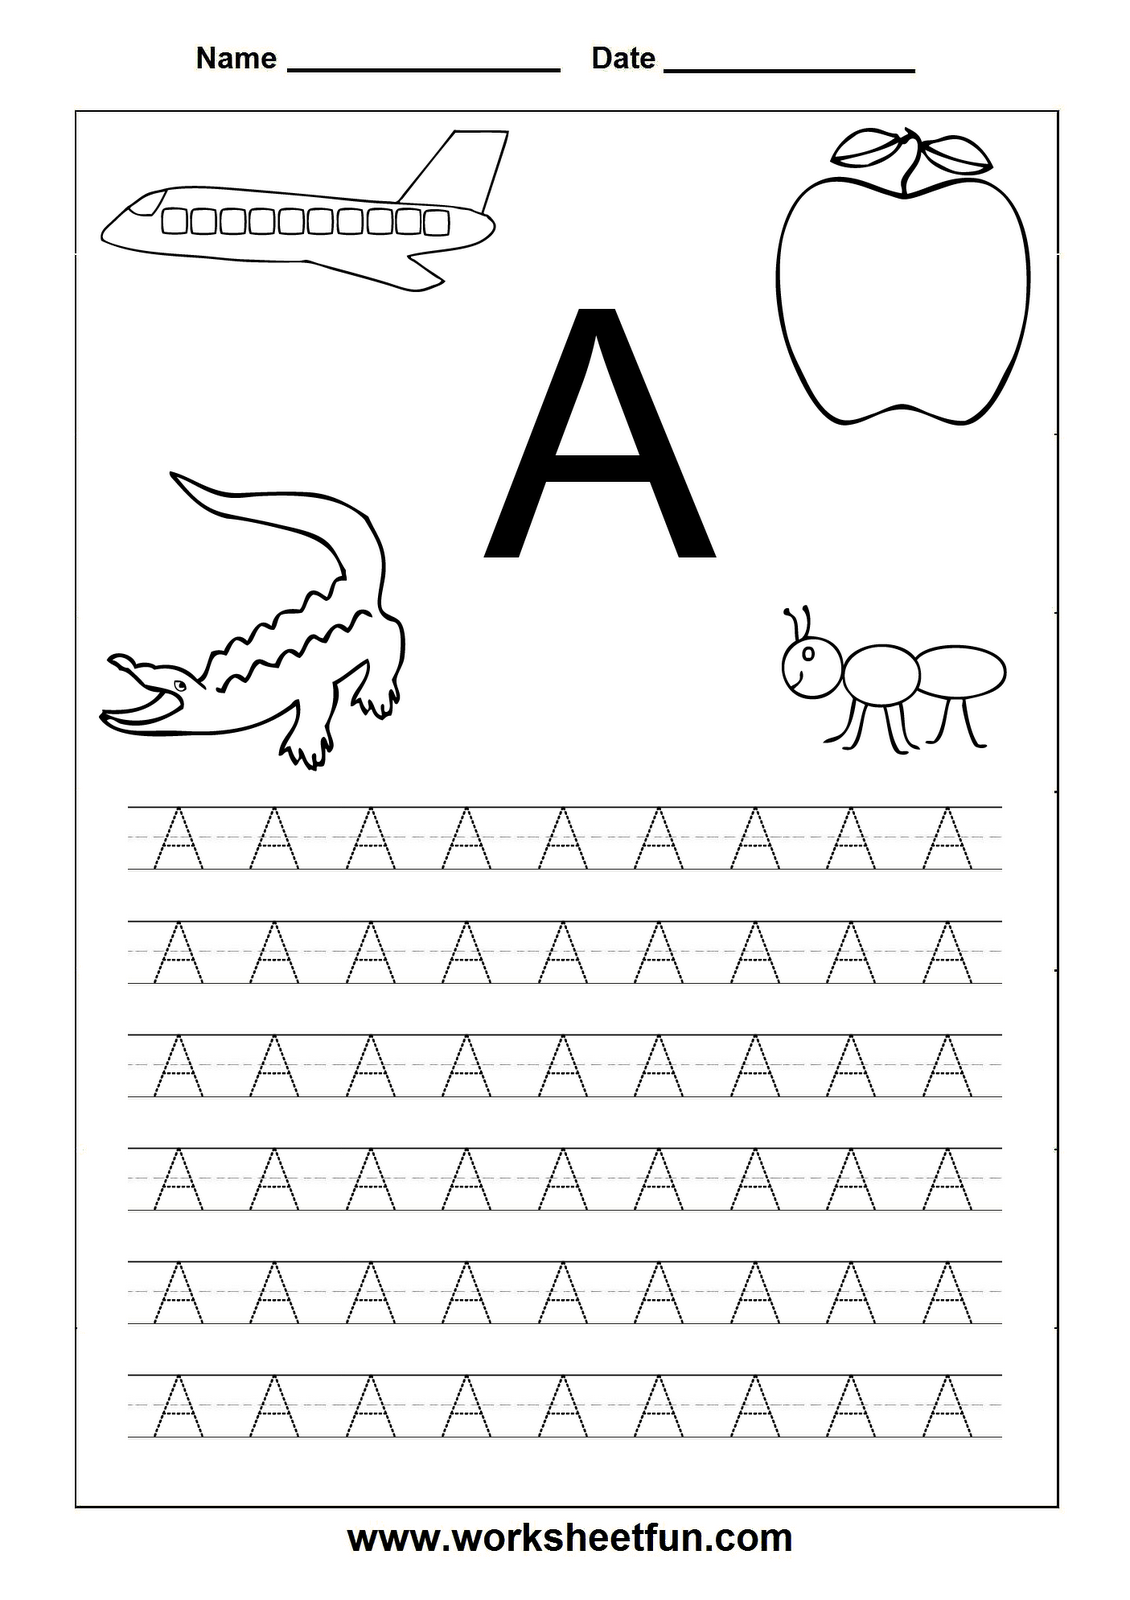 Worksheets Free Alphabet Worksheets For Preschoolers a z capital letter tracing worksheets there are plenty more free printable for preschool kindergarten and grade worksheets